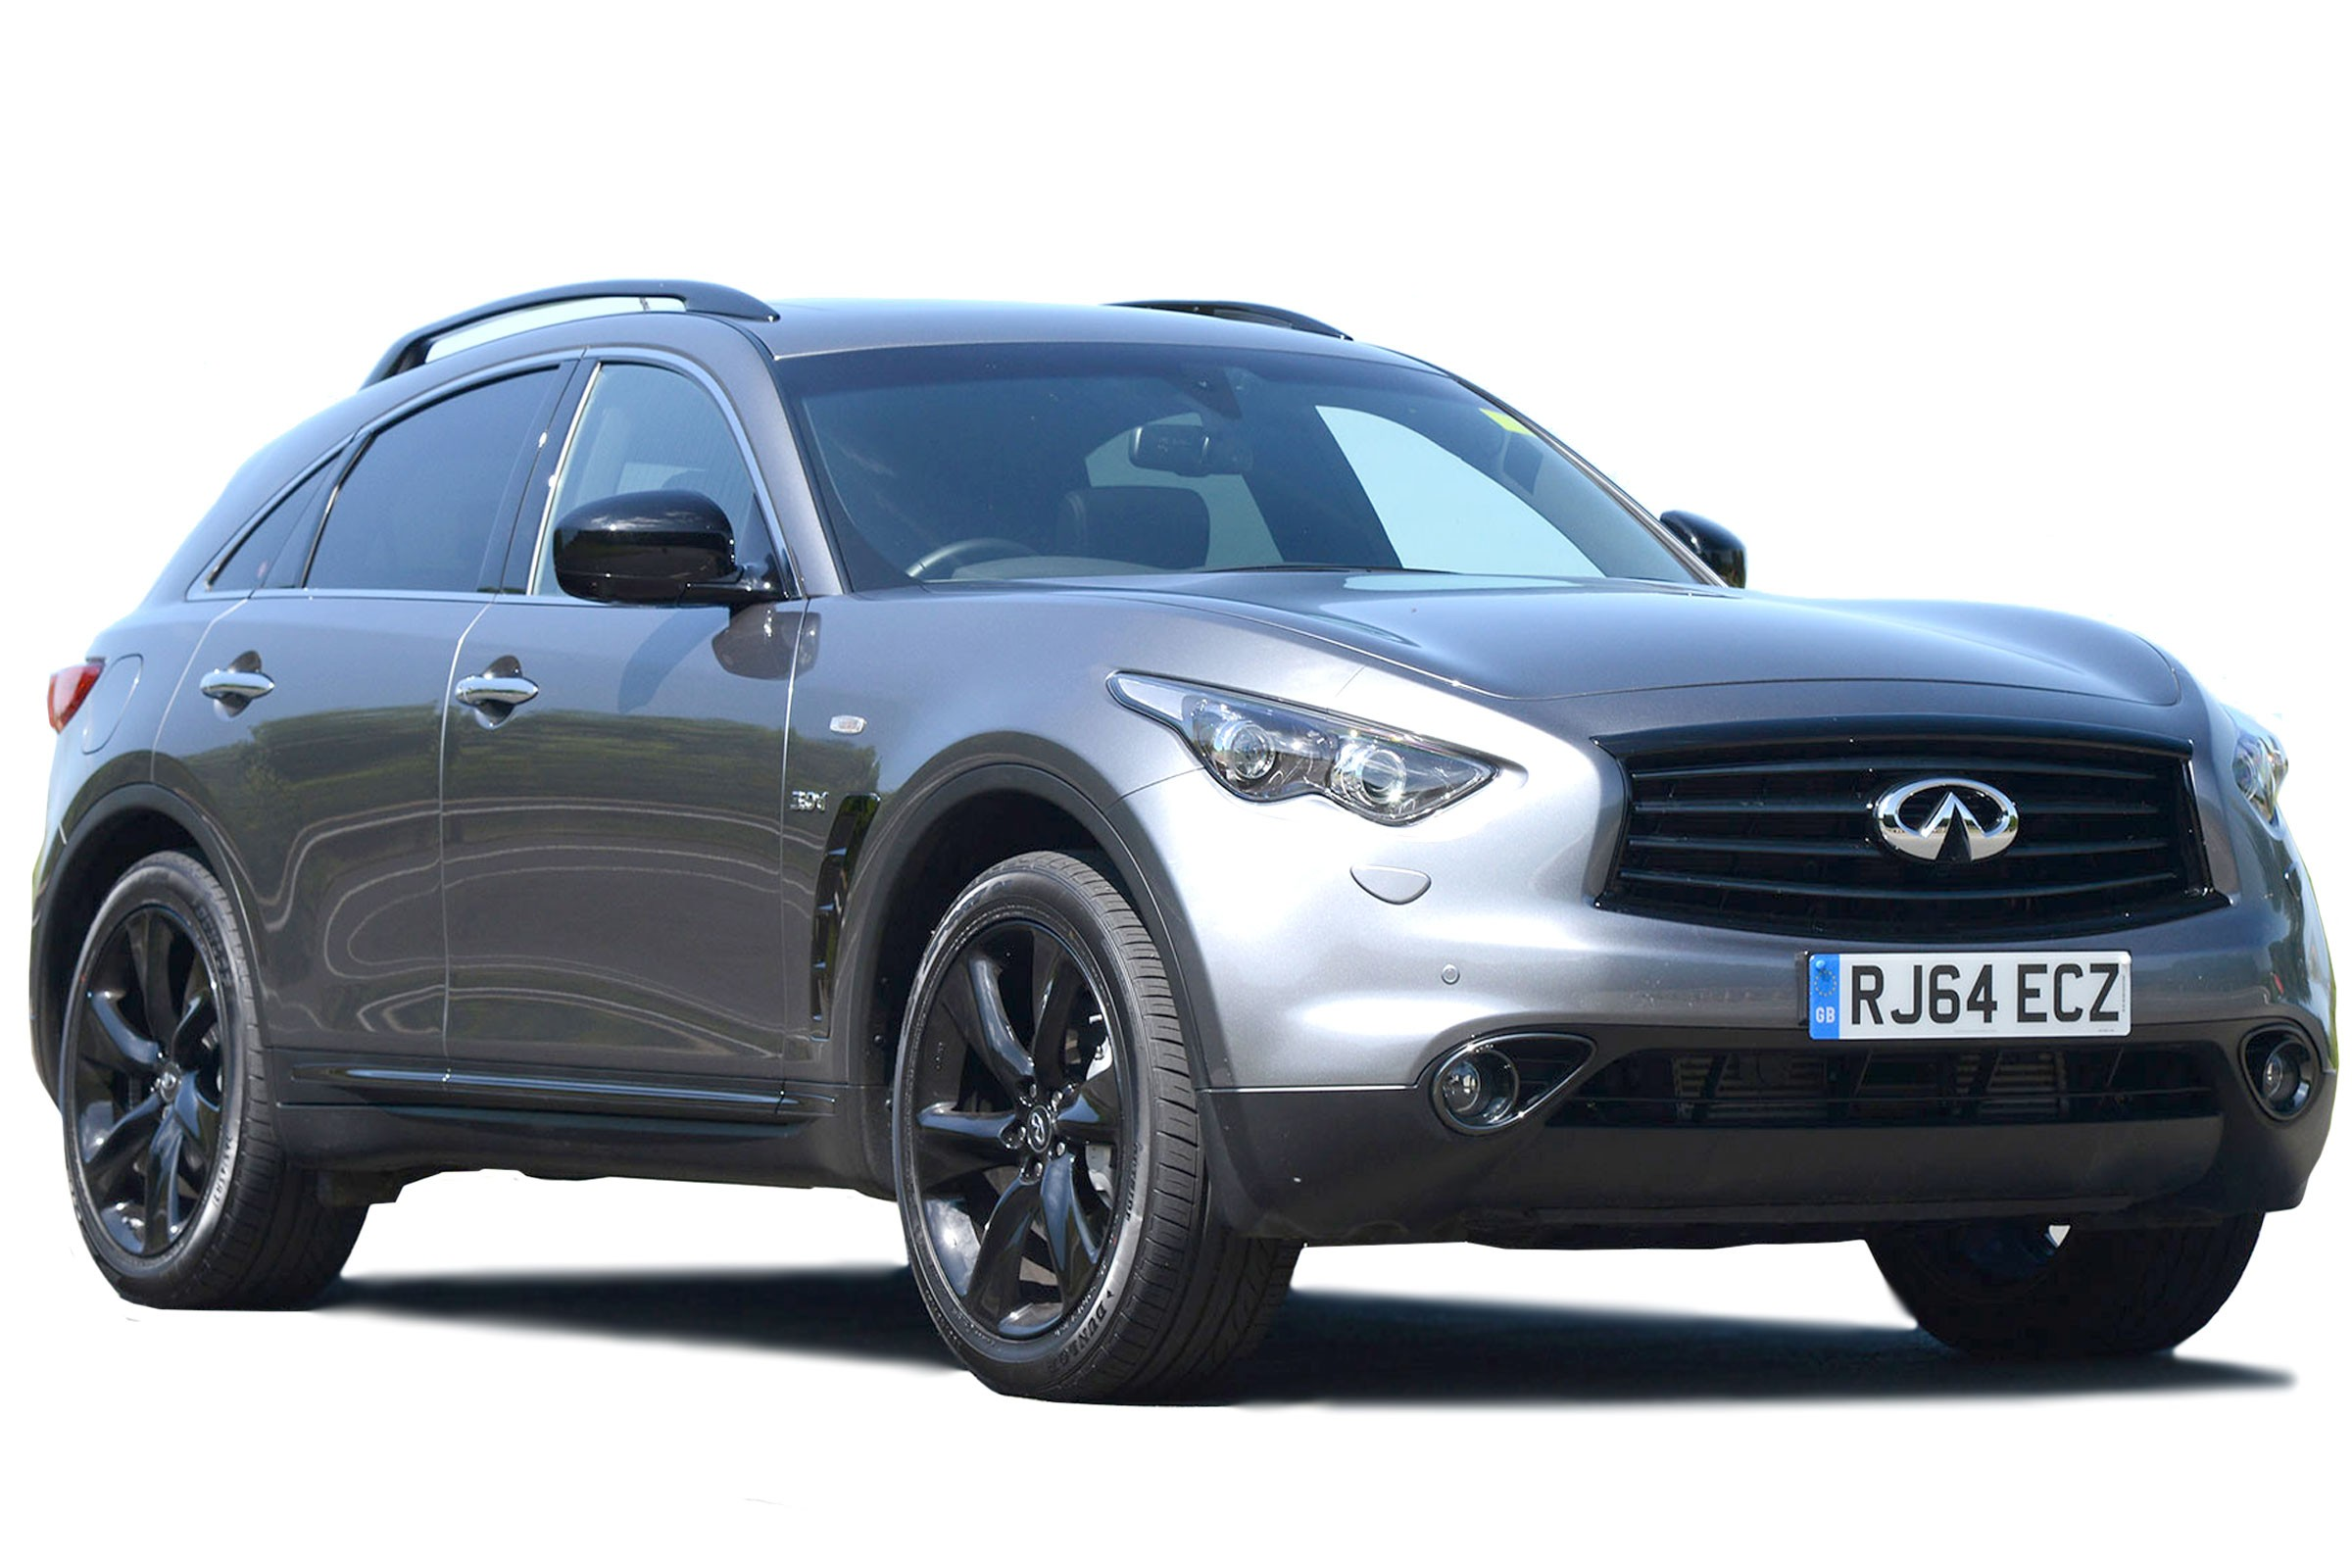 Car Exterior Diagram Infiniti Qx70 Suv Owner Reviews Mpg Problems Reliability Of Car Exterior Diagram